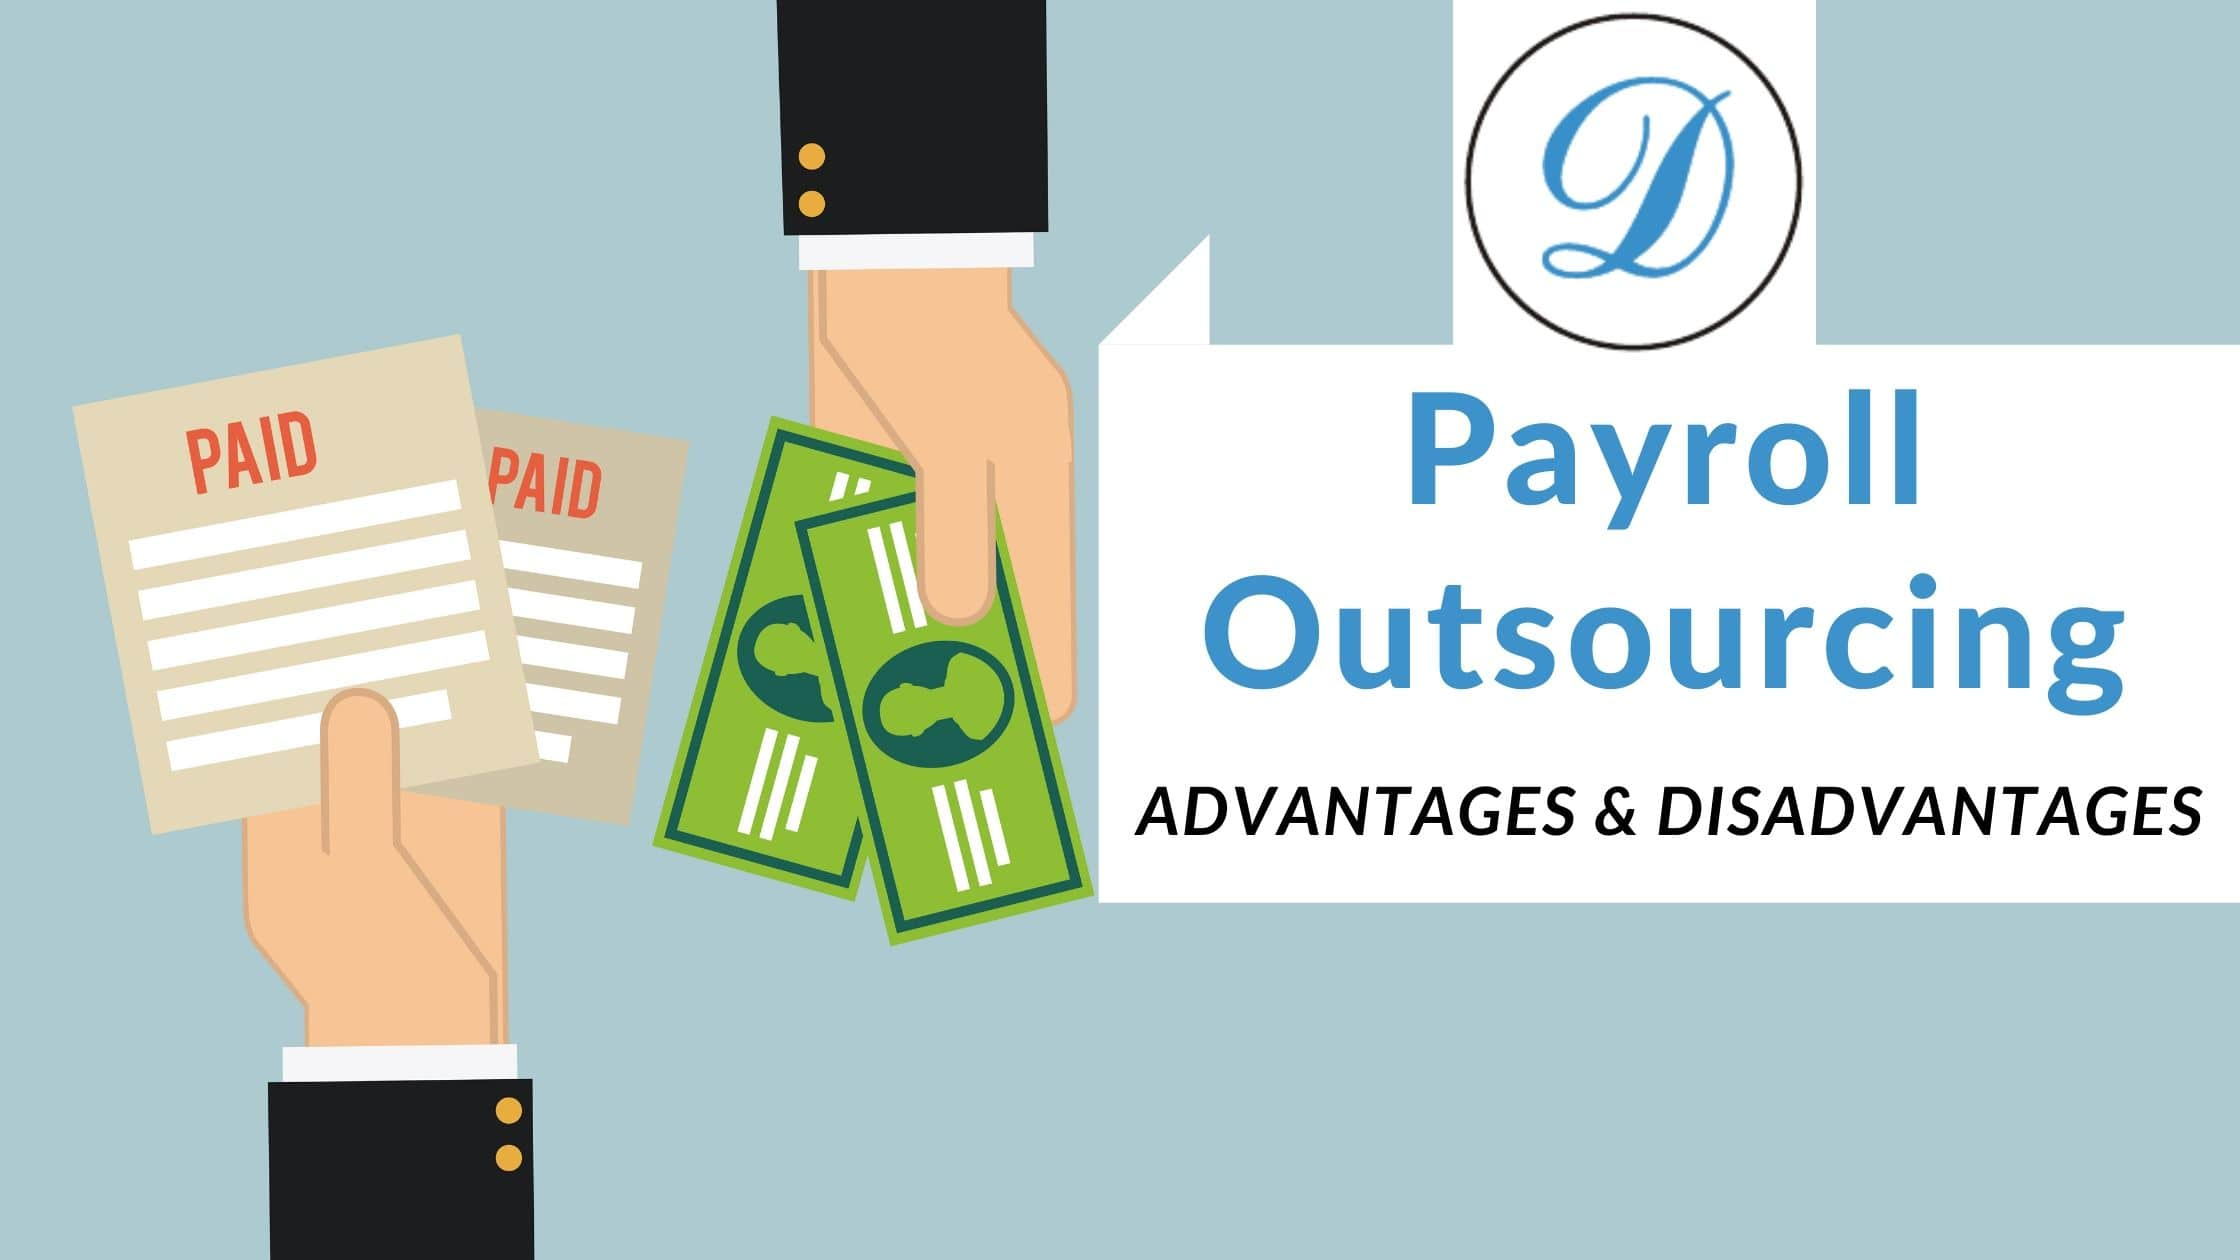 advantages and disadvantages of outsourcing payroll